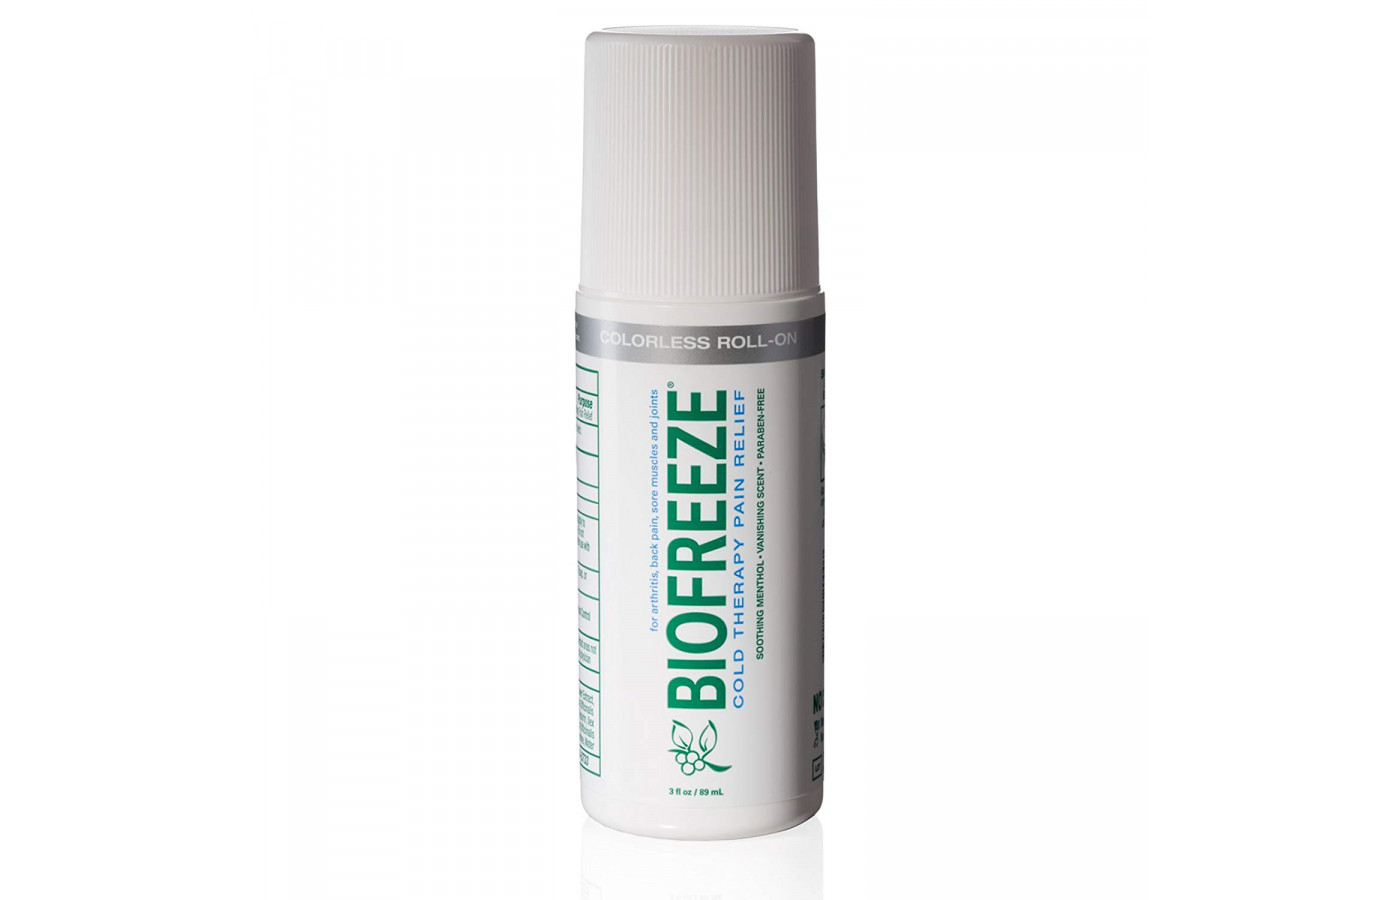 biofreeze roll on